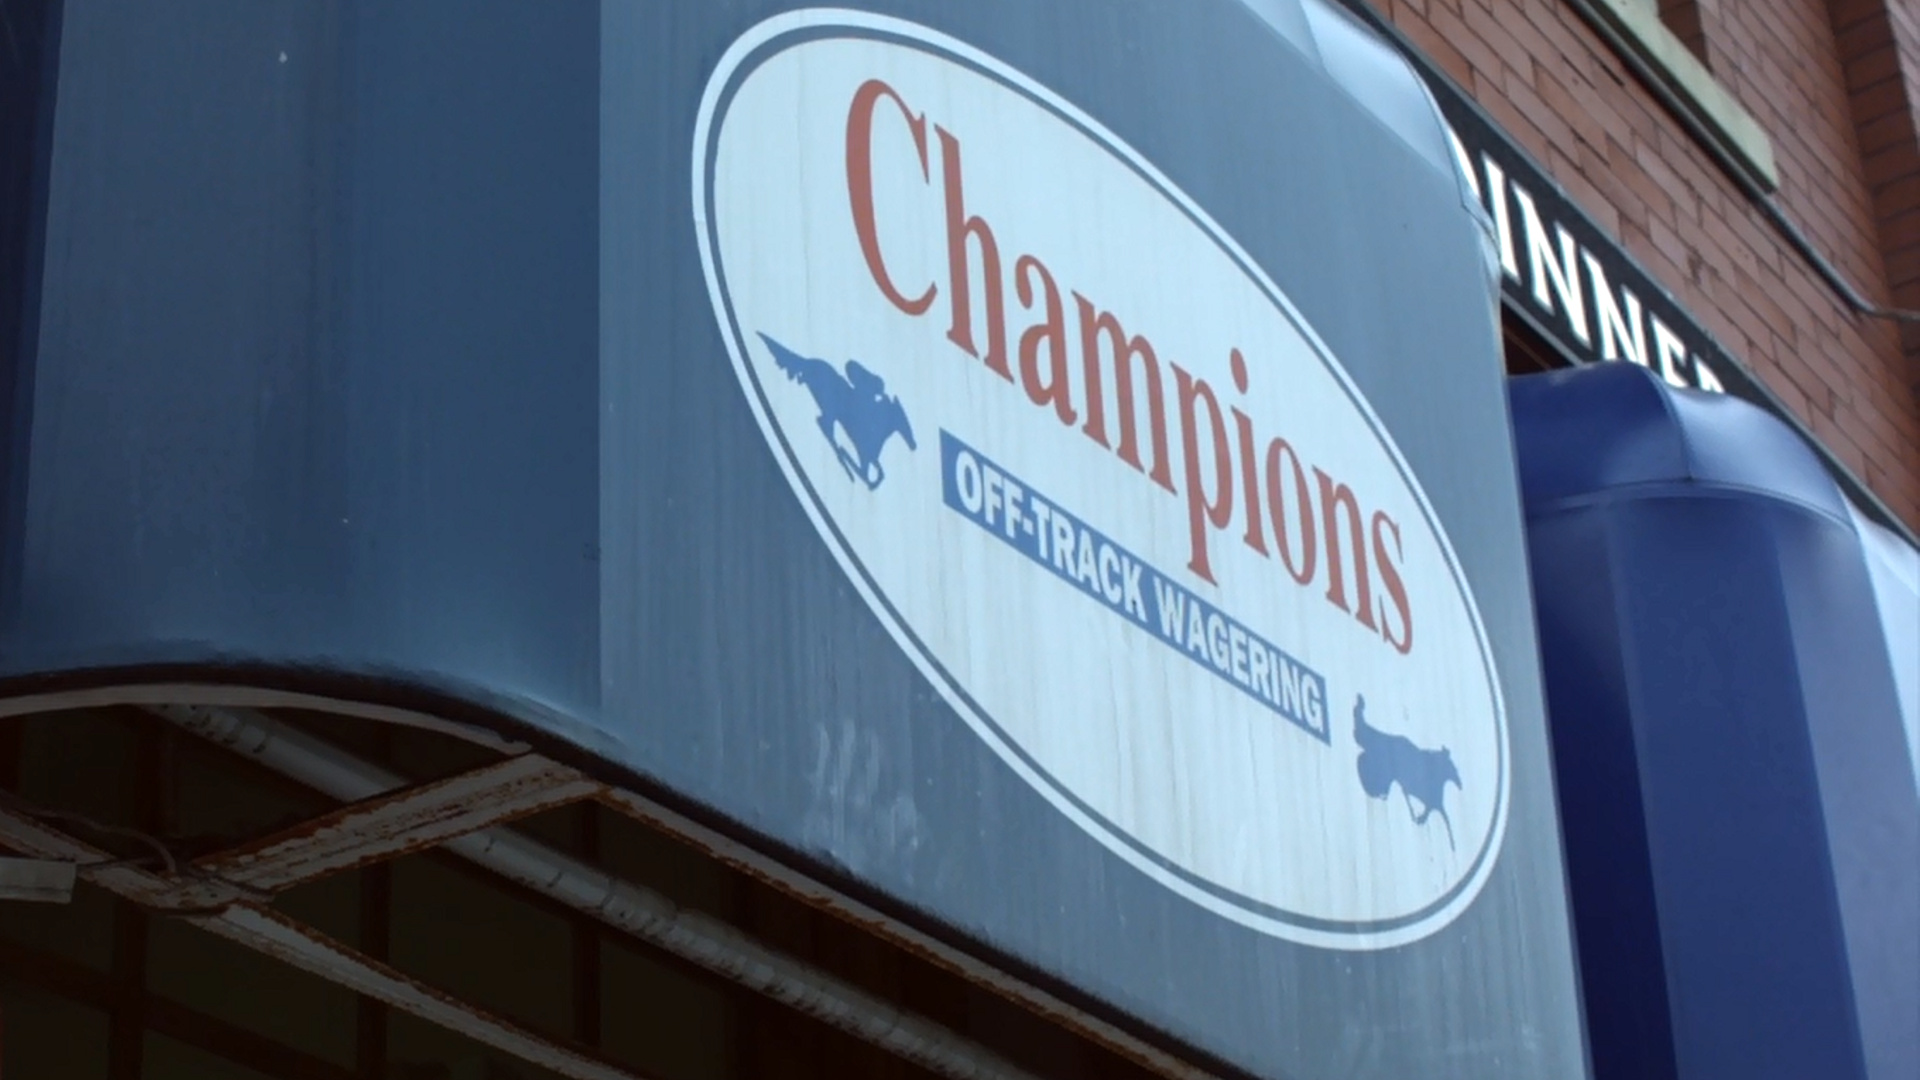 Champions Off-track Wagering